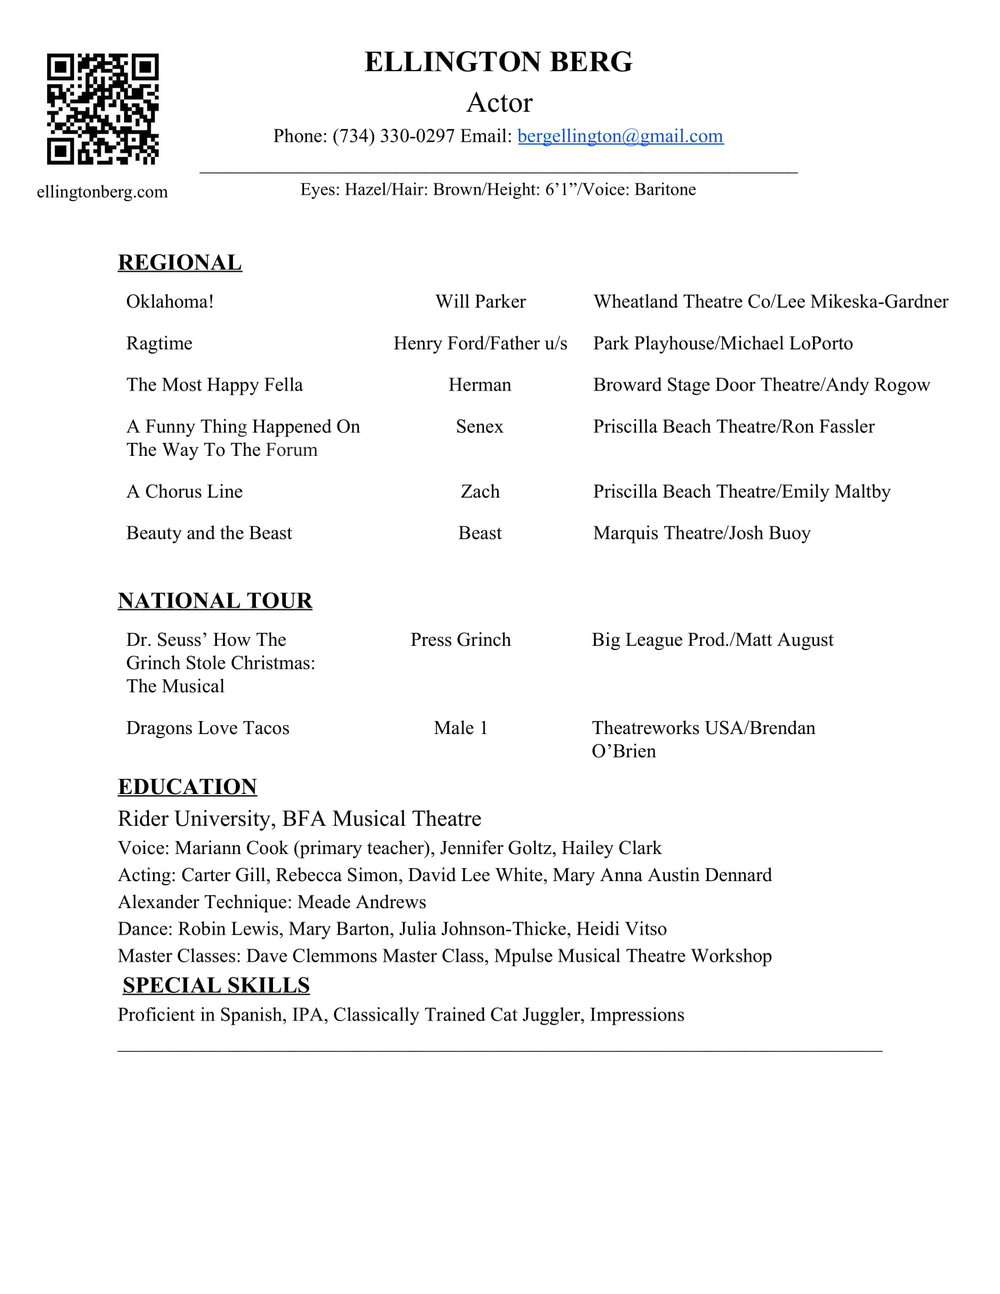 Ellington Berg Performance Resume-1.jpg